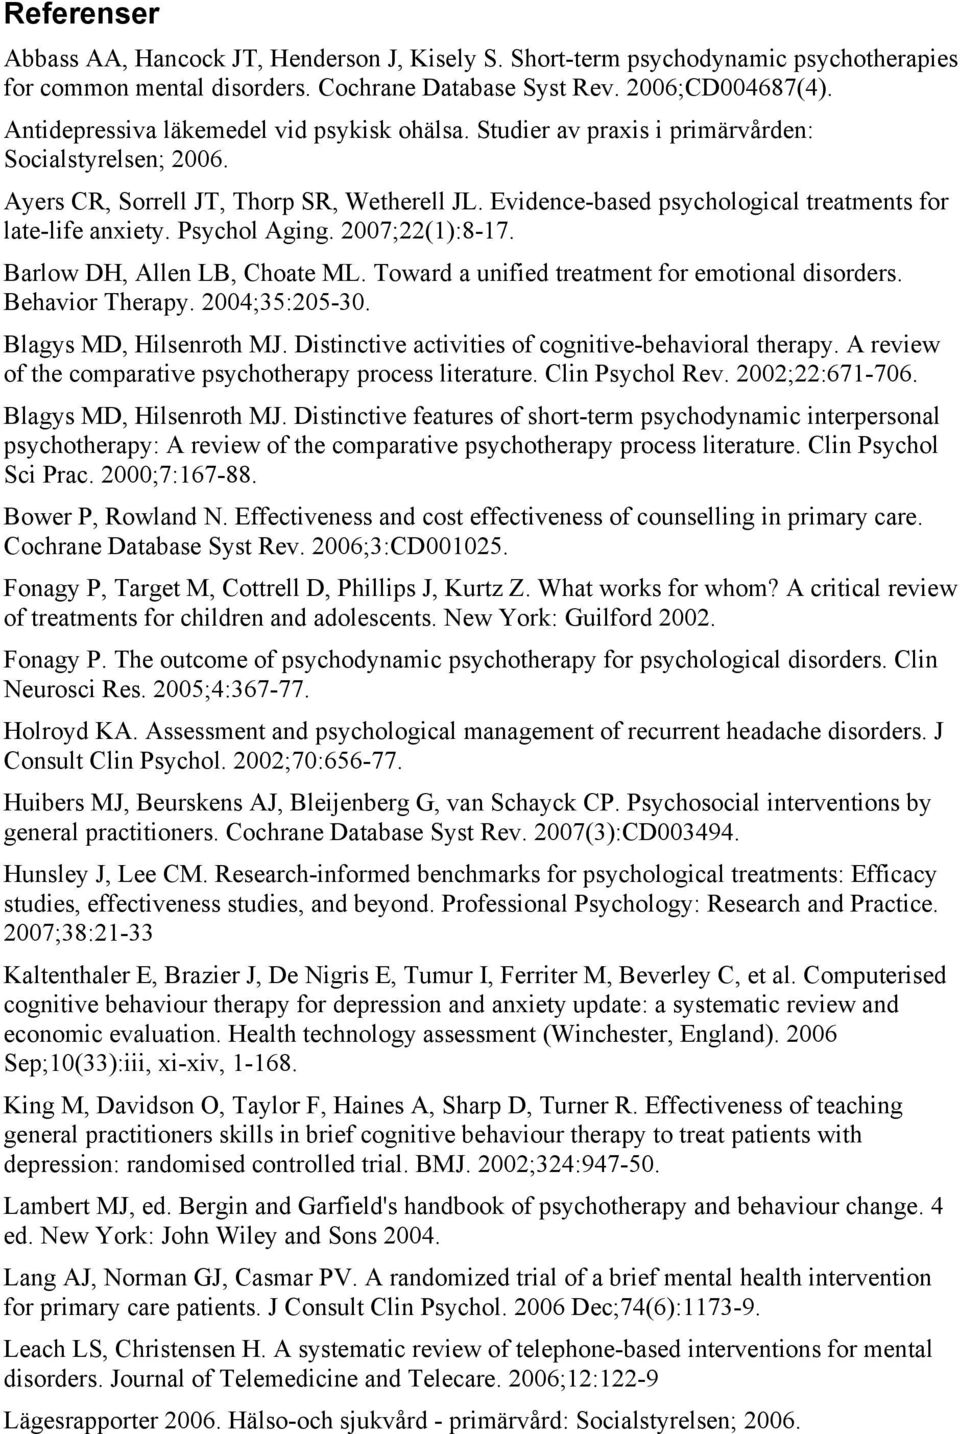 Evidence-based psychological treatments for late-life anxiety. Psychol Aging. 2007;22(1):8-17. Barlow DH, Allen LB, Choate ML. Toward a unified treatment for emotional disorders. Behavior Therapy.